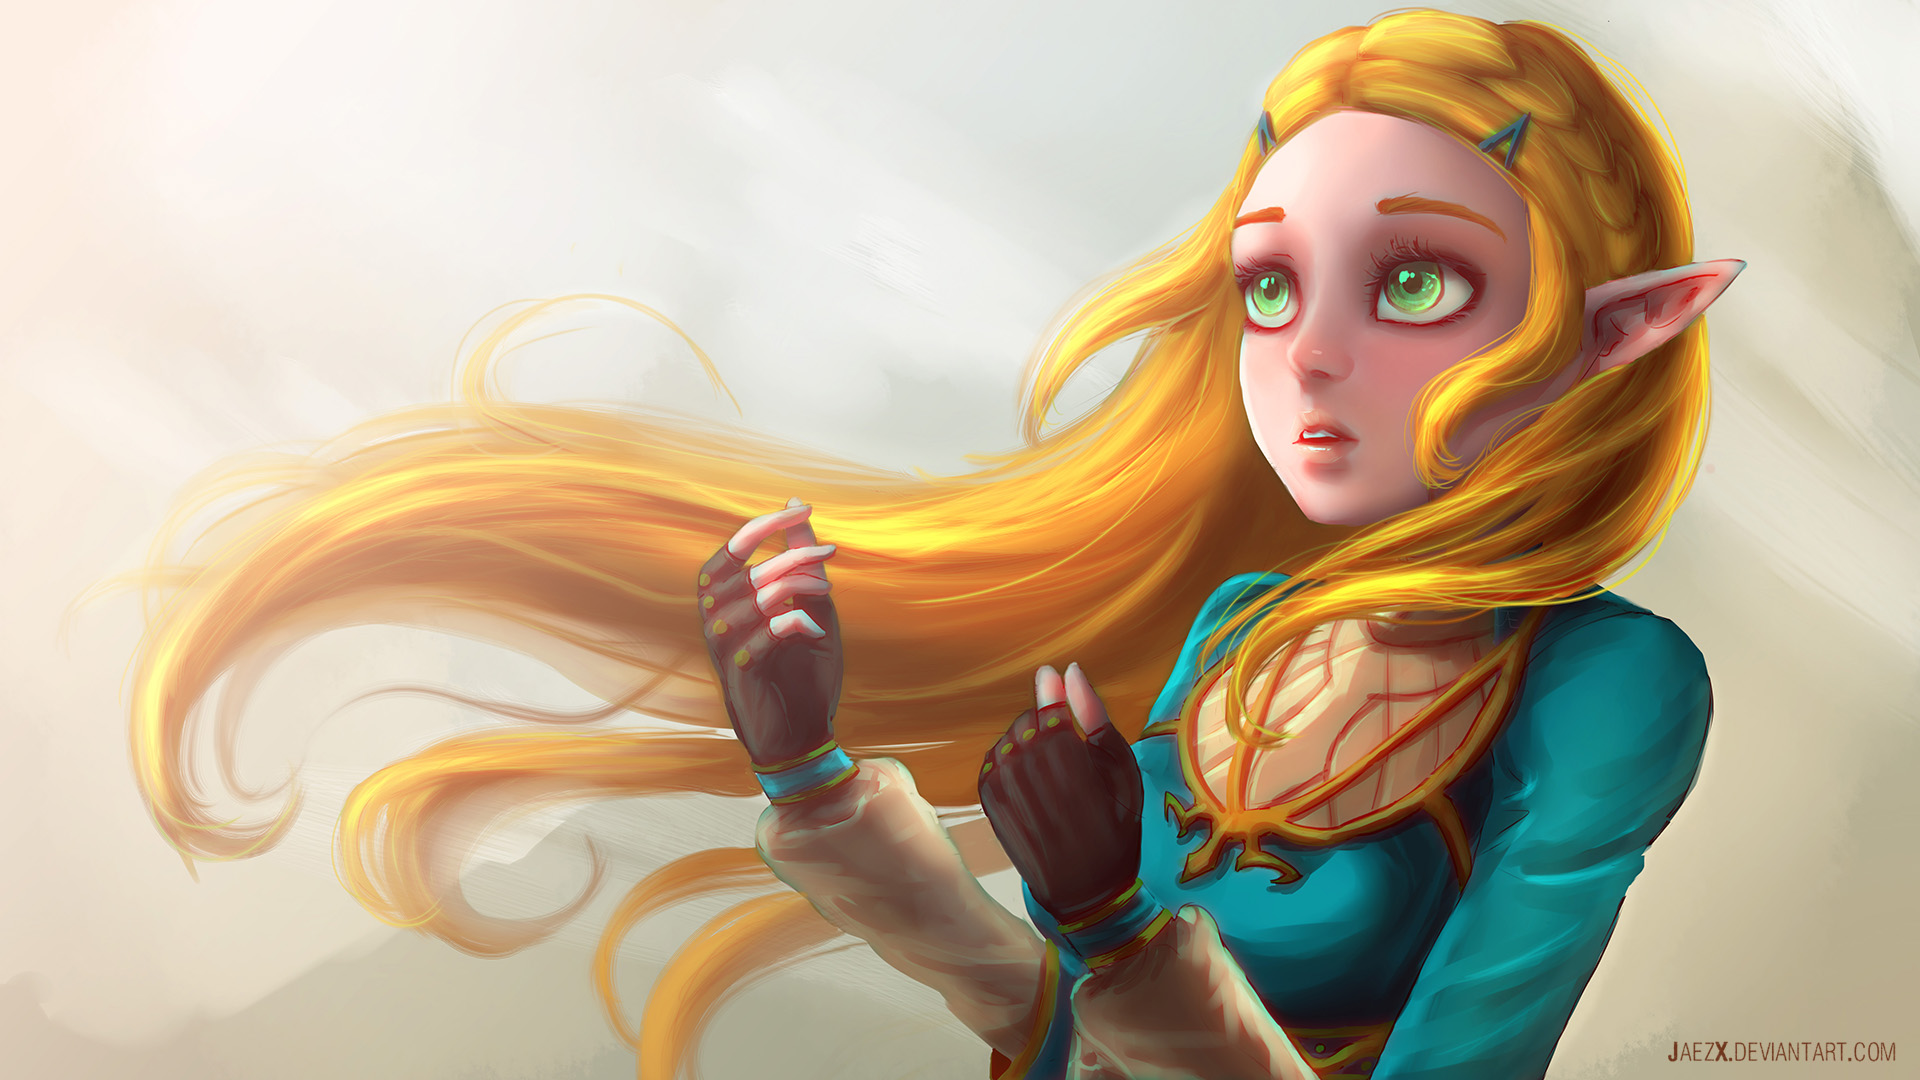 The Legend Of Zelda Breath Of The Wild Artwork Hd Games 4k